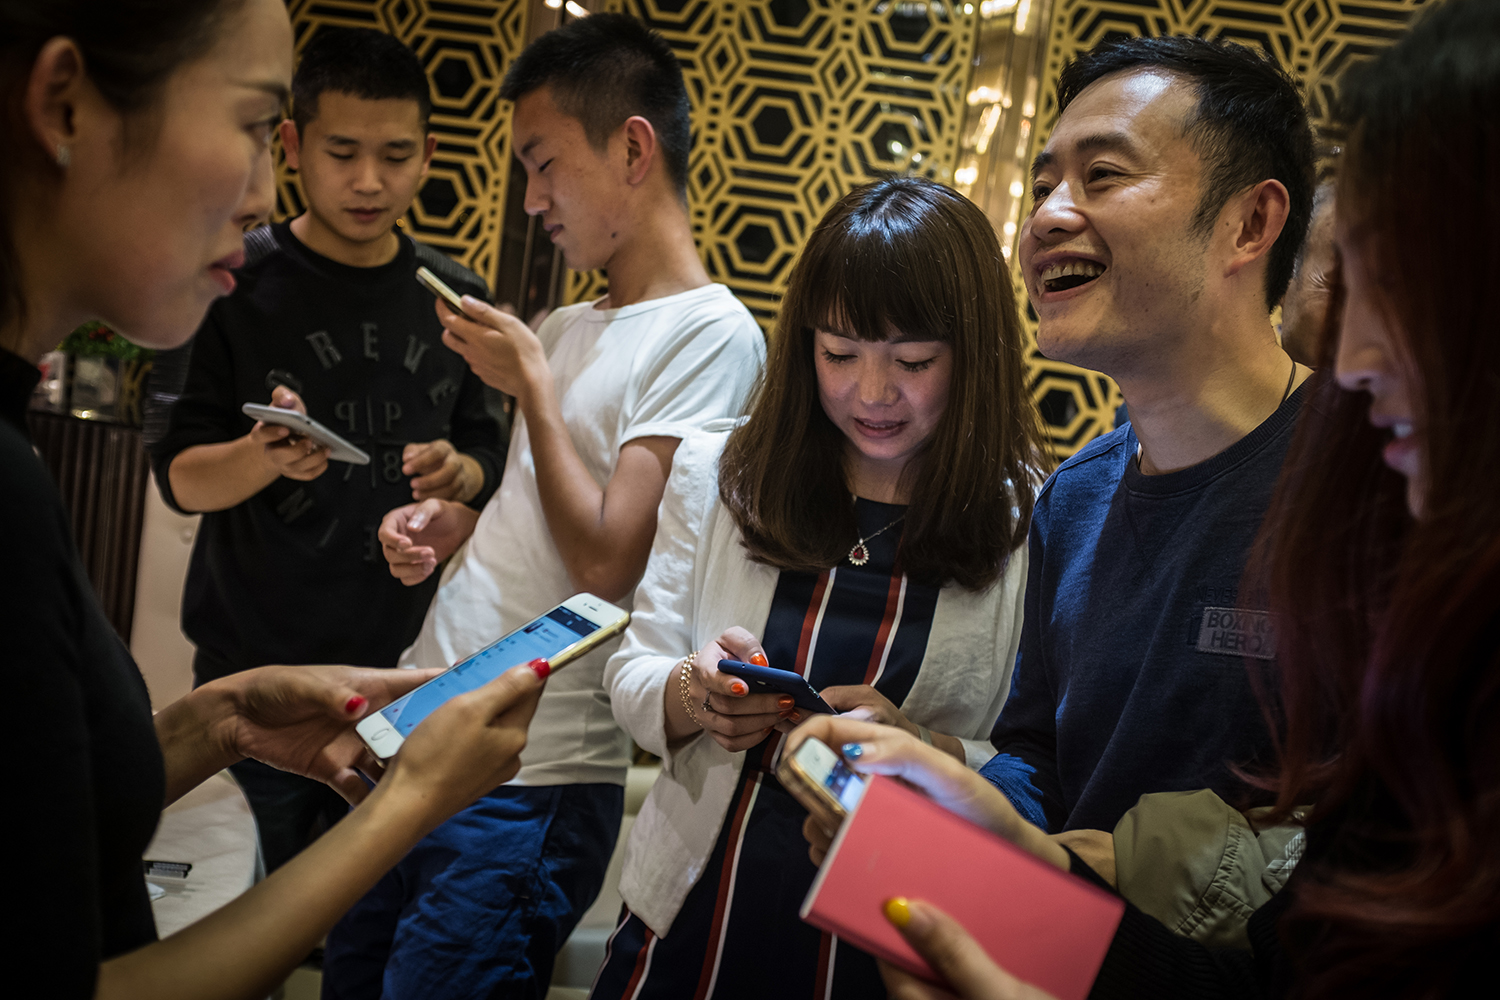 Bitcoin miners add each other on social media at the first China Bitcoin Miner Conference, at Chengdu Tianfu Financial Center, in Sichuan province, October 22, 2016.